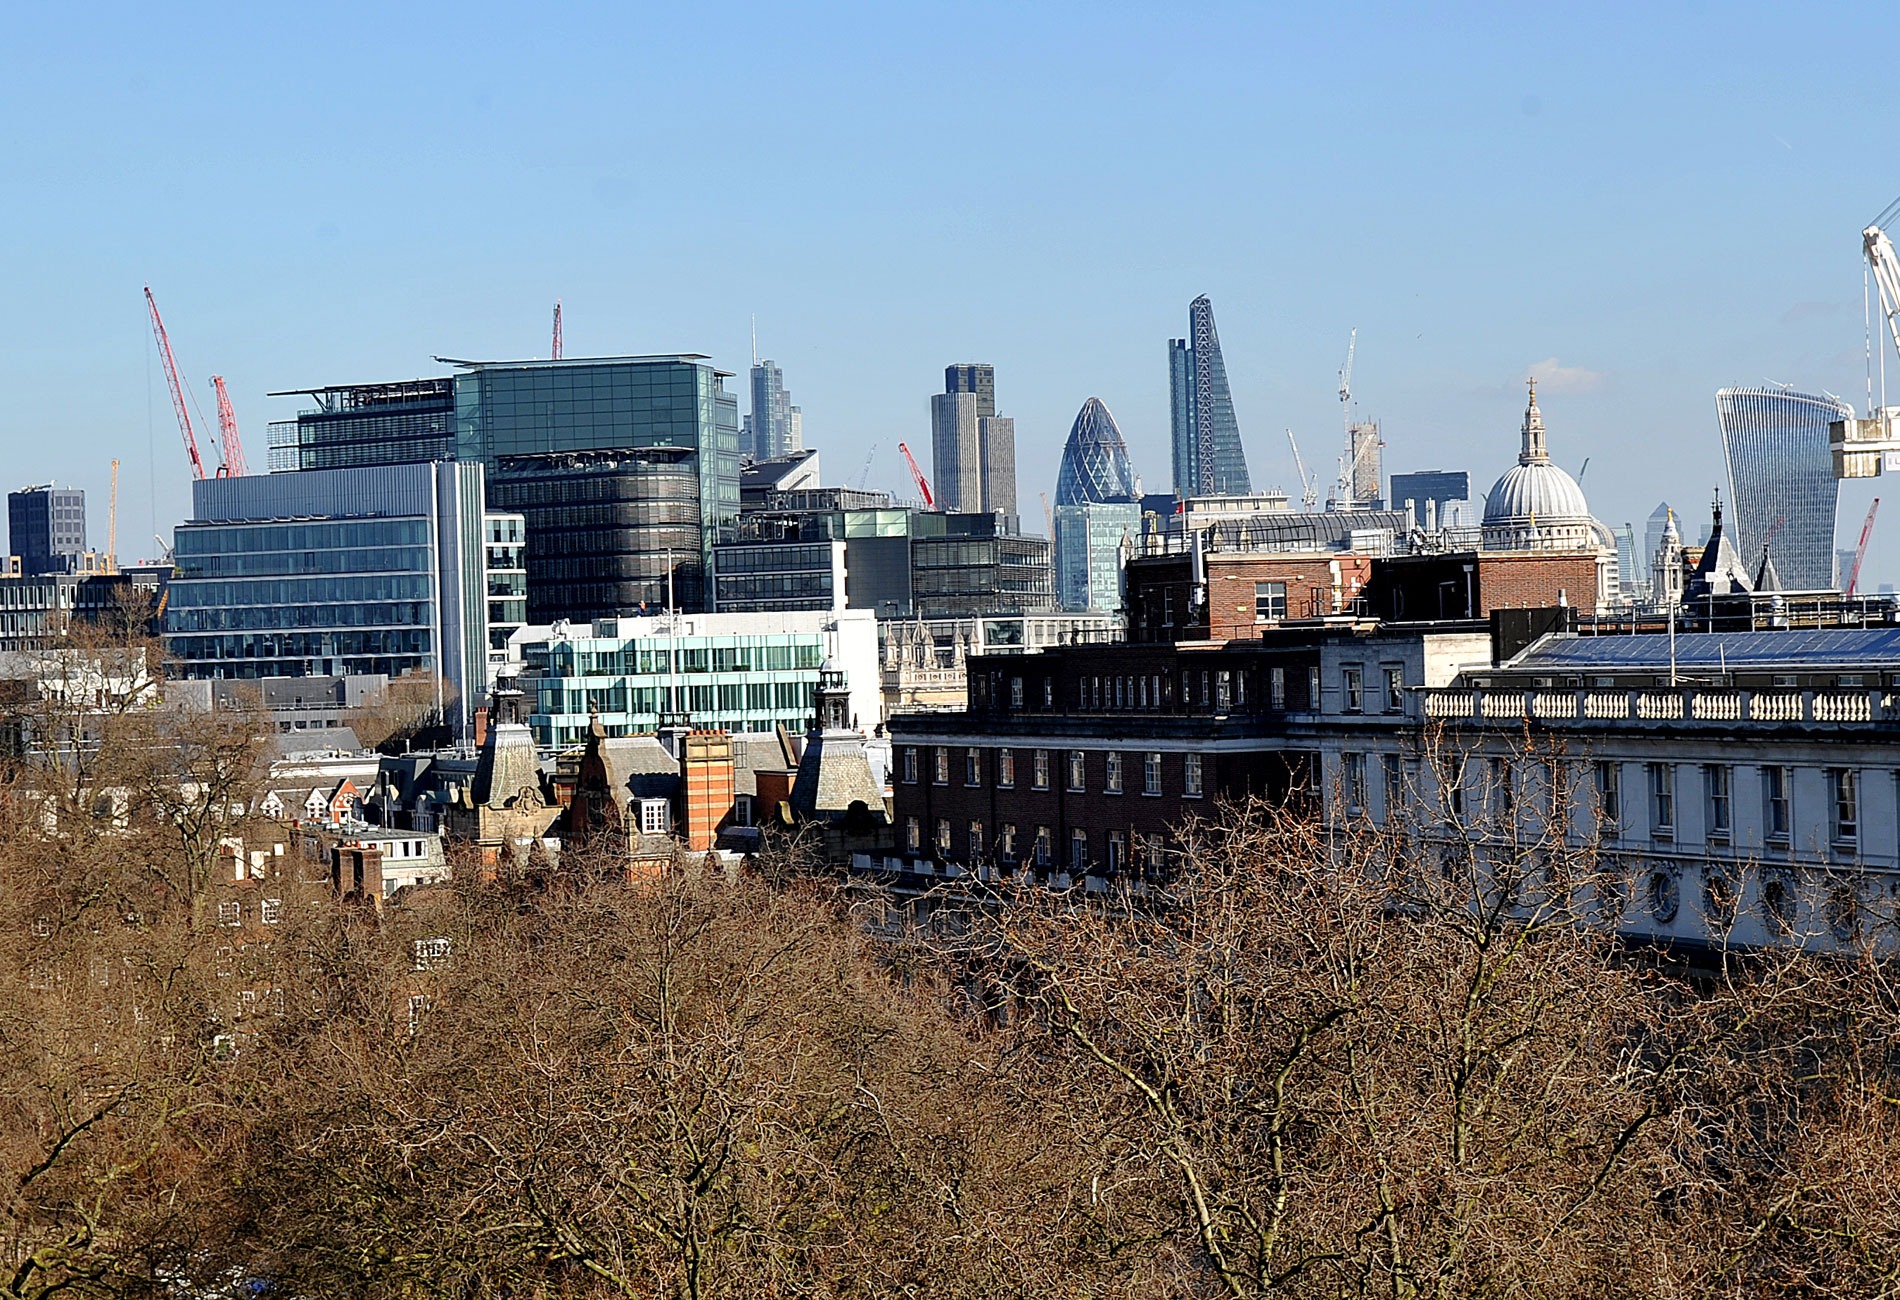 View of London office